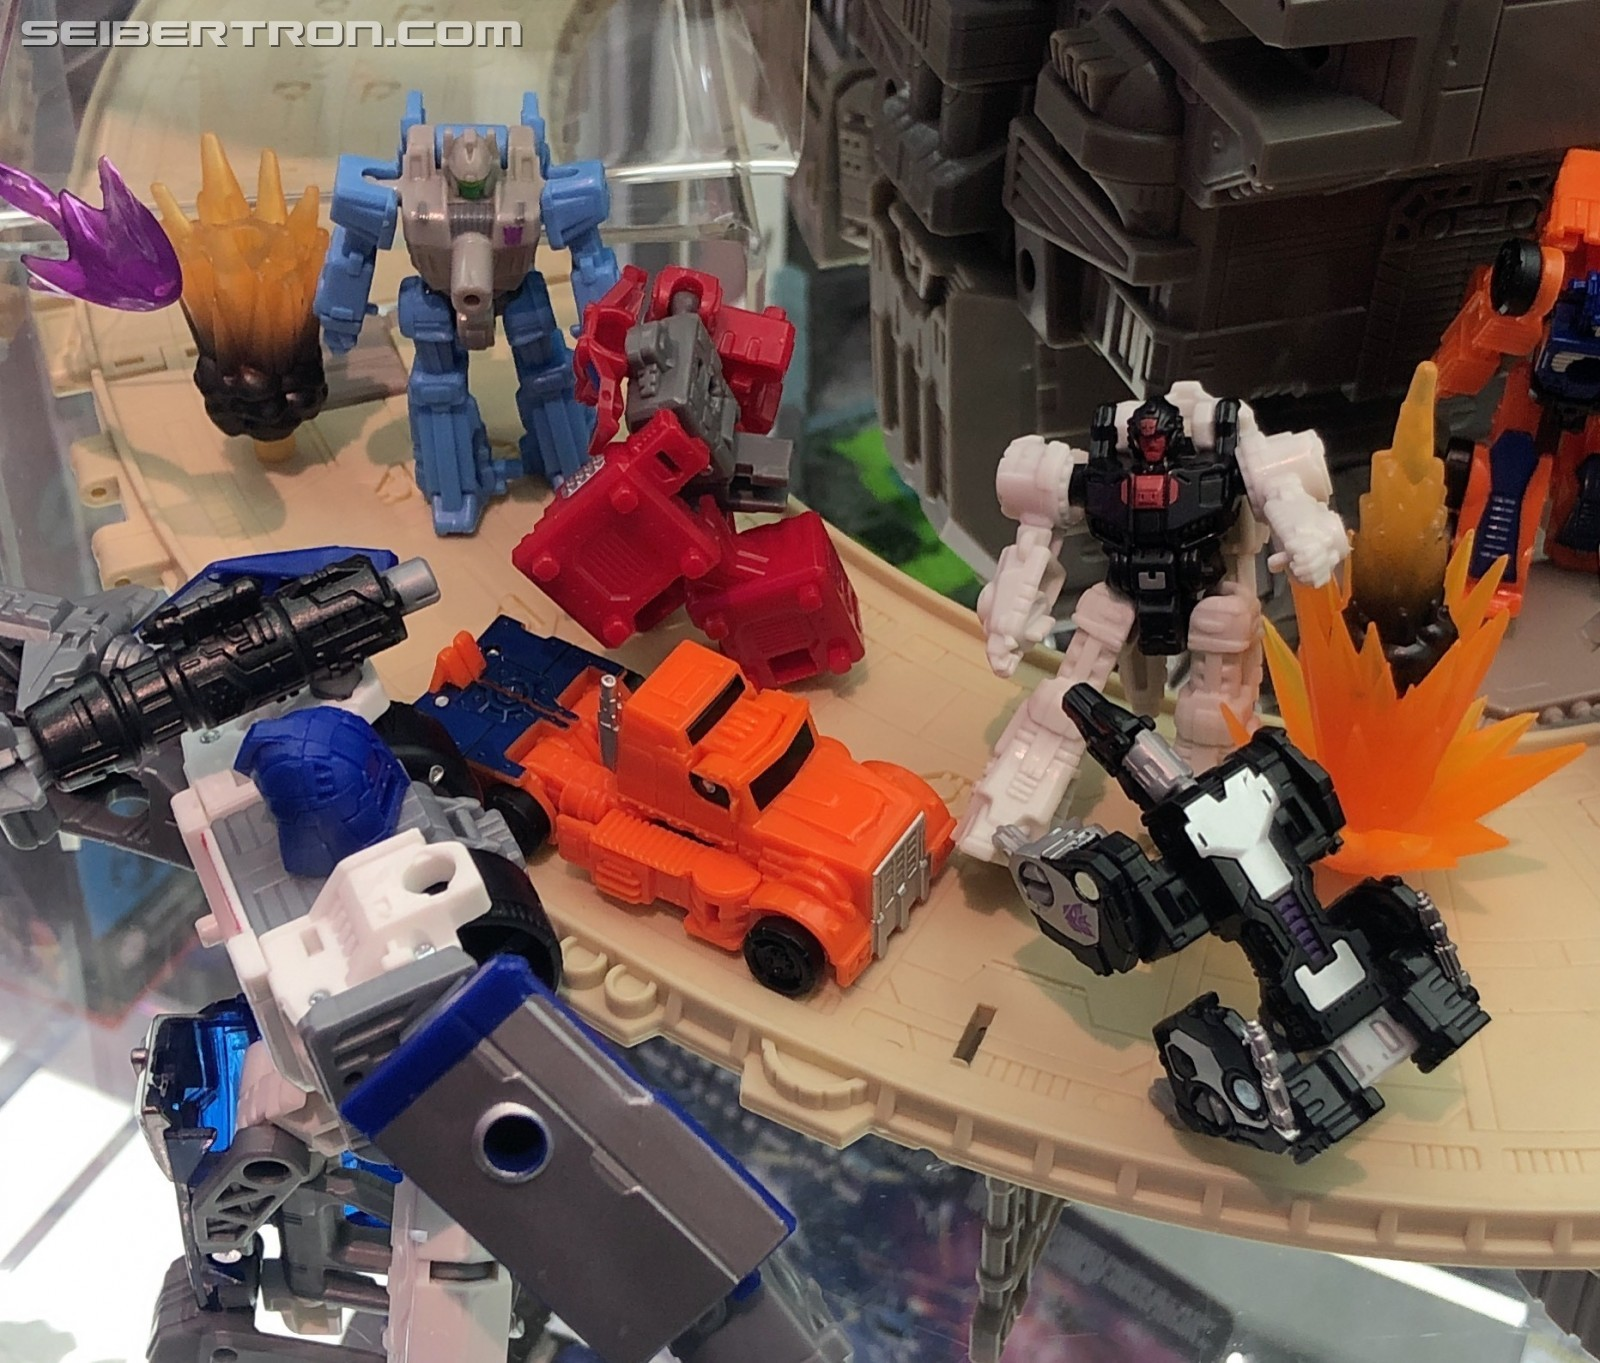 Transformers News: Seibertron Presents #SDCC2019 Transformers Coverage